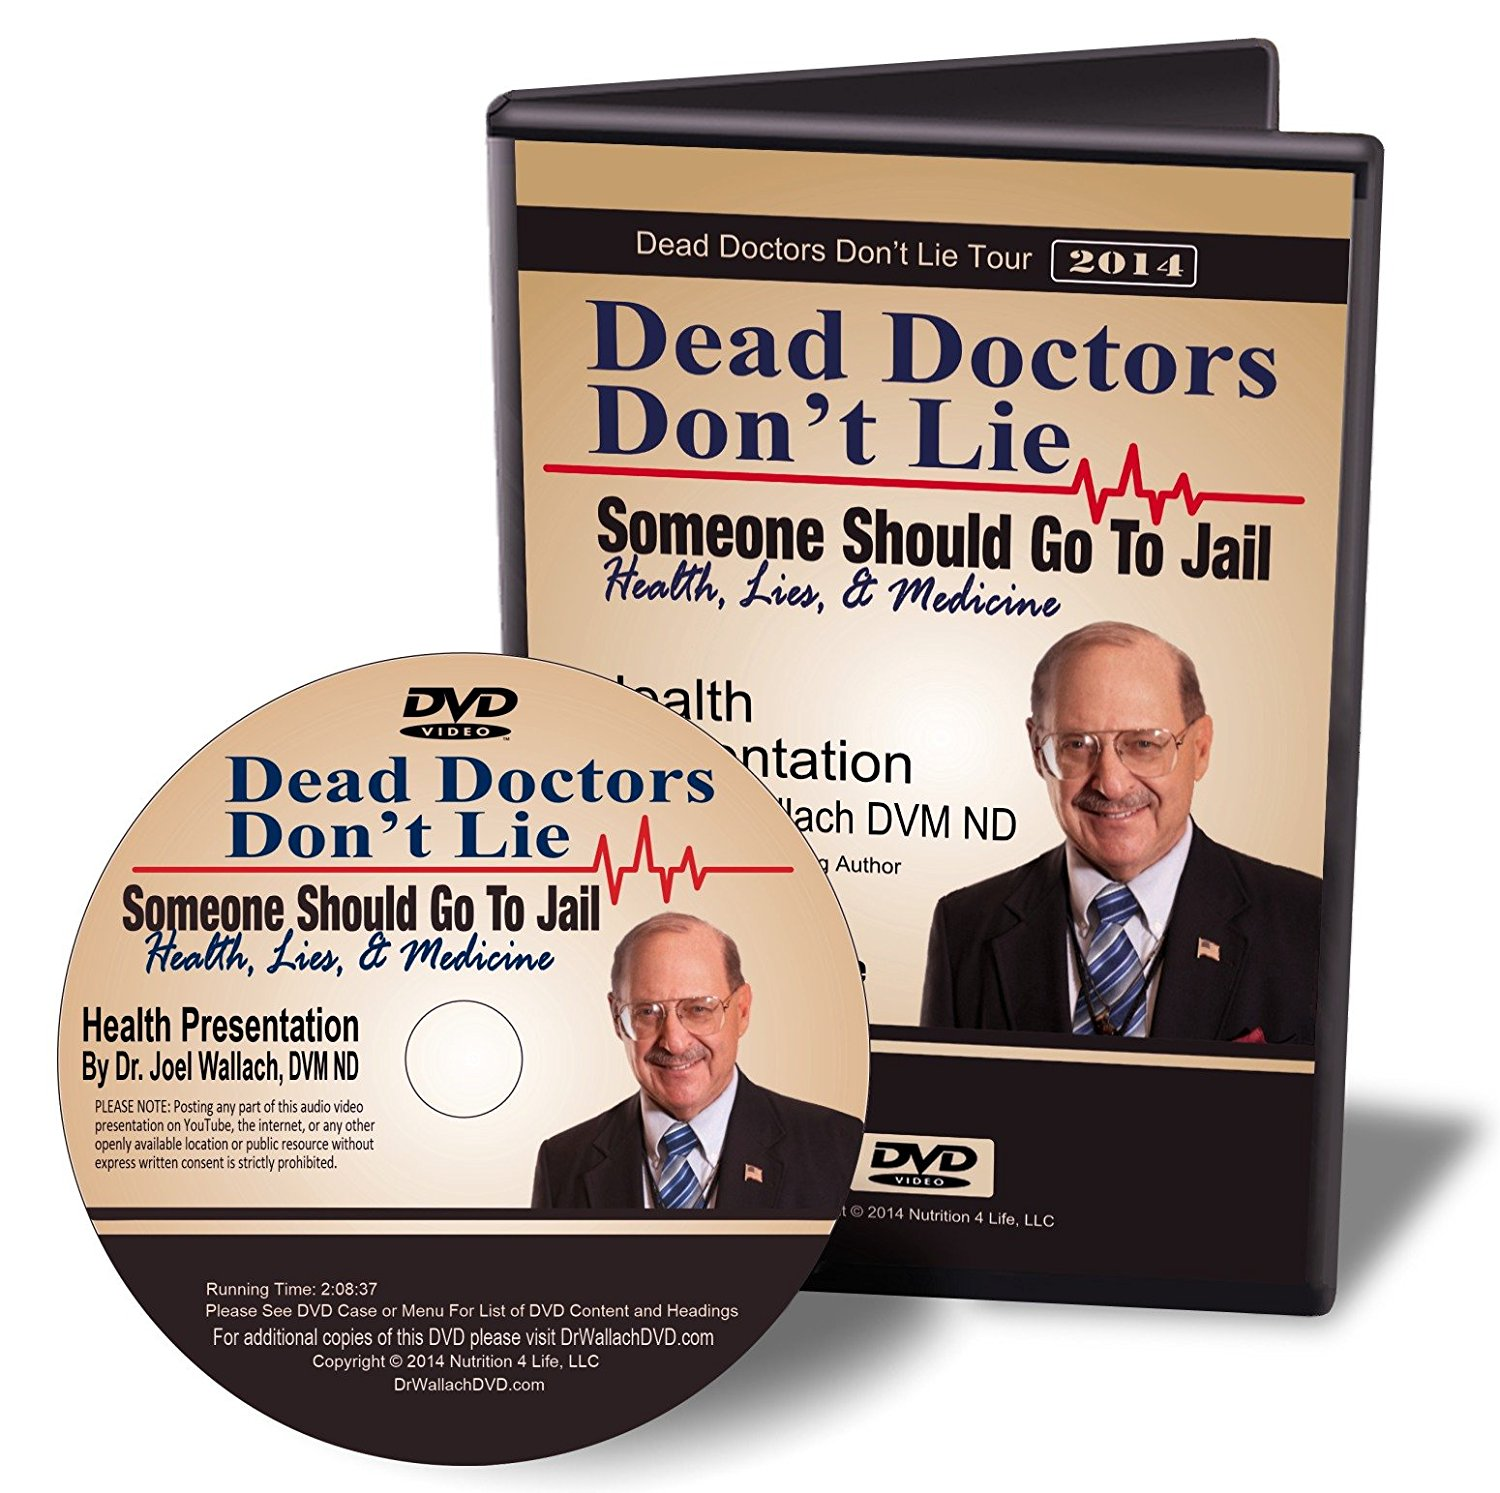 DVD - Dead Doctors Don't Lie; Somebody Should Go To Jail - By Dr Joel Wallach